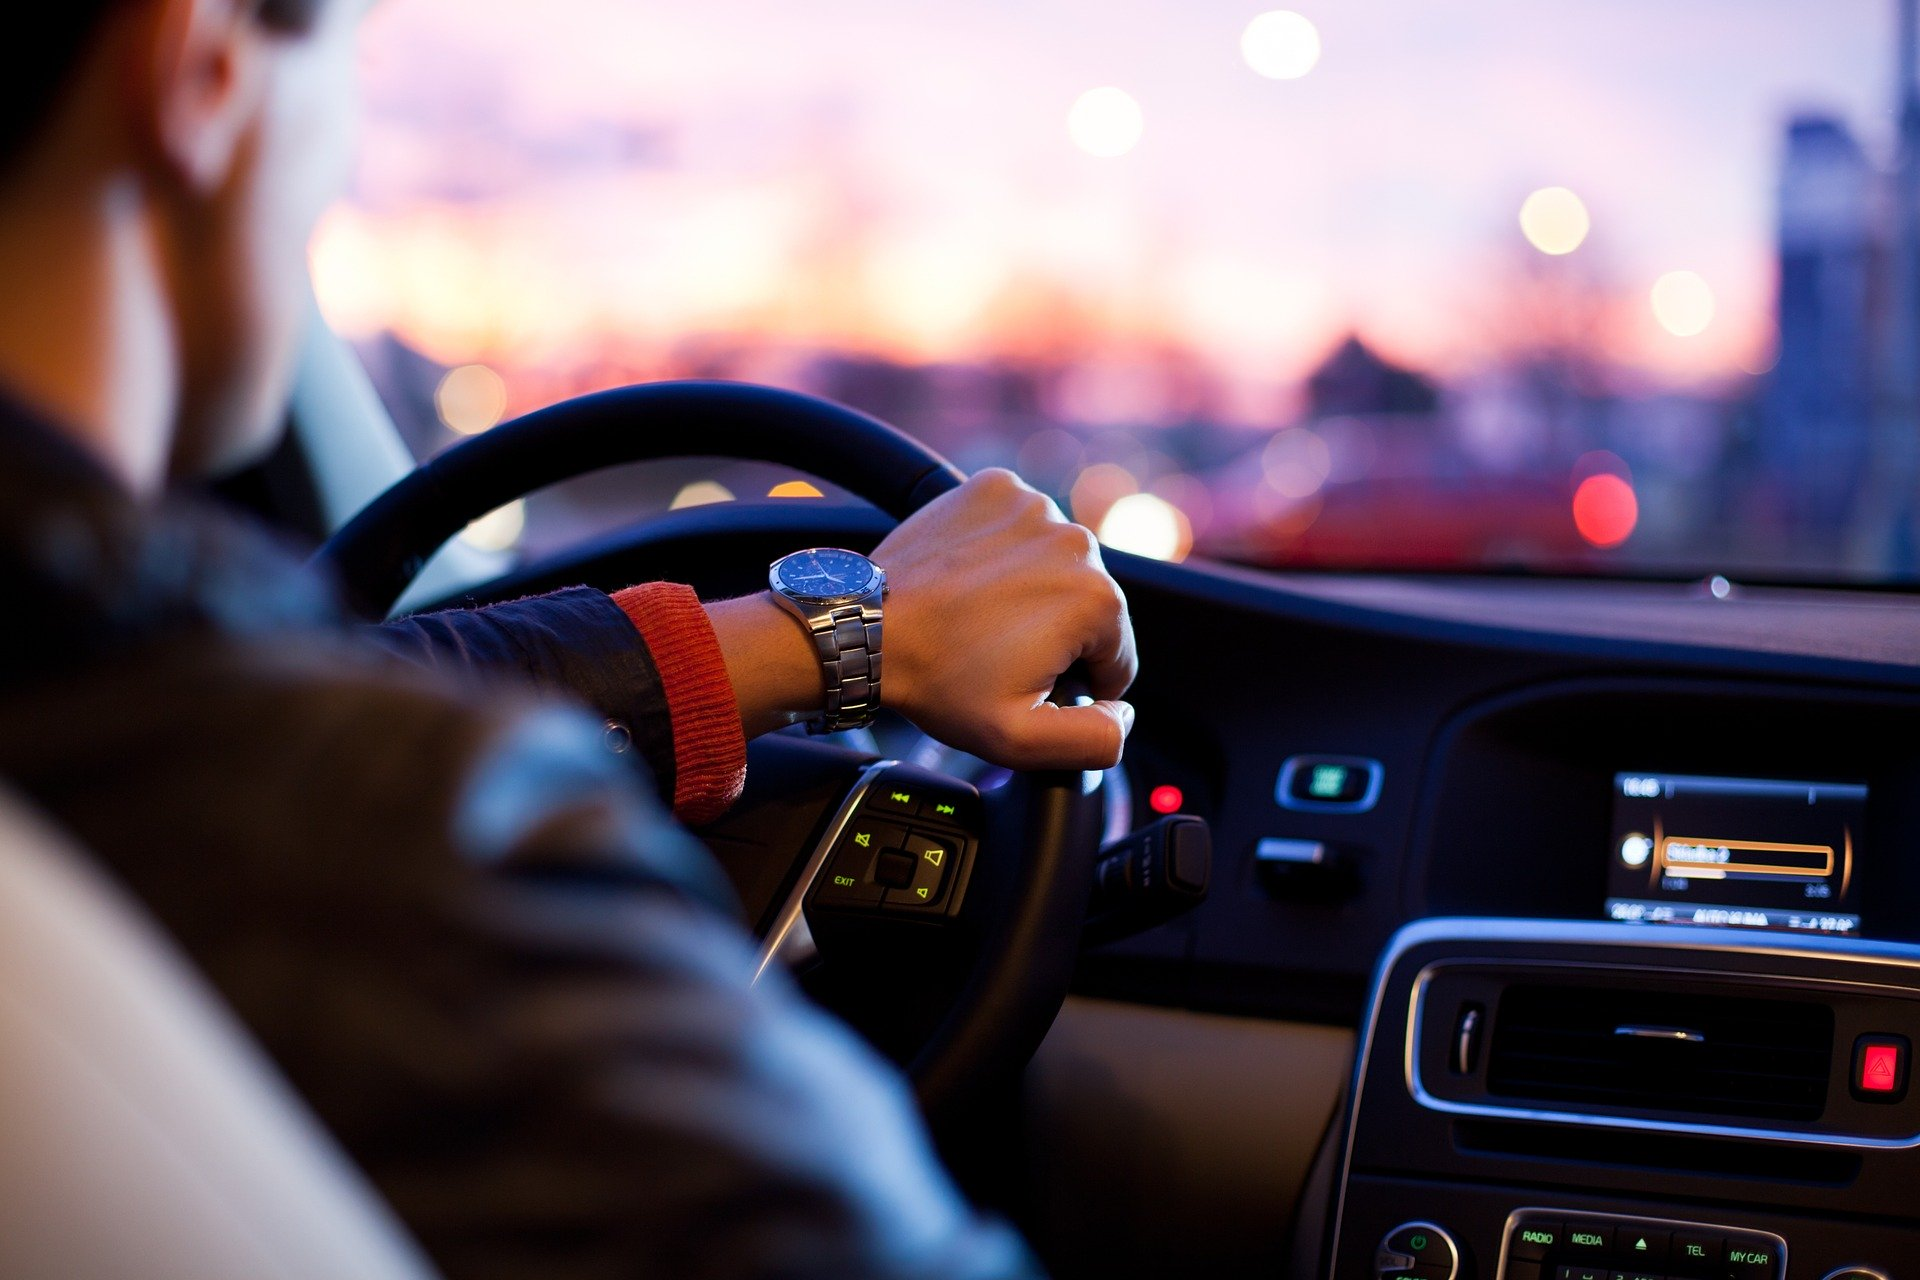 Is Driving While Sick with COVID-19 As Dangerous as Driving Drunk?